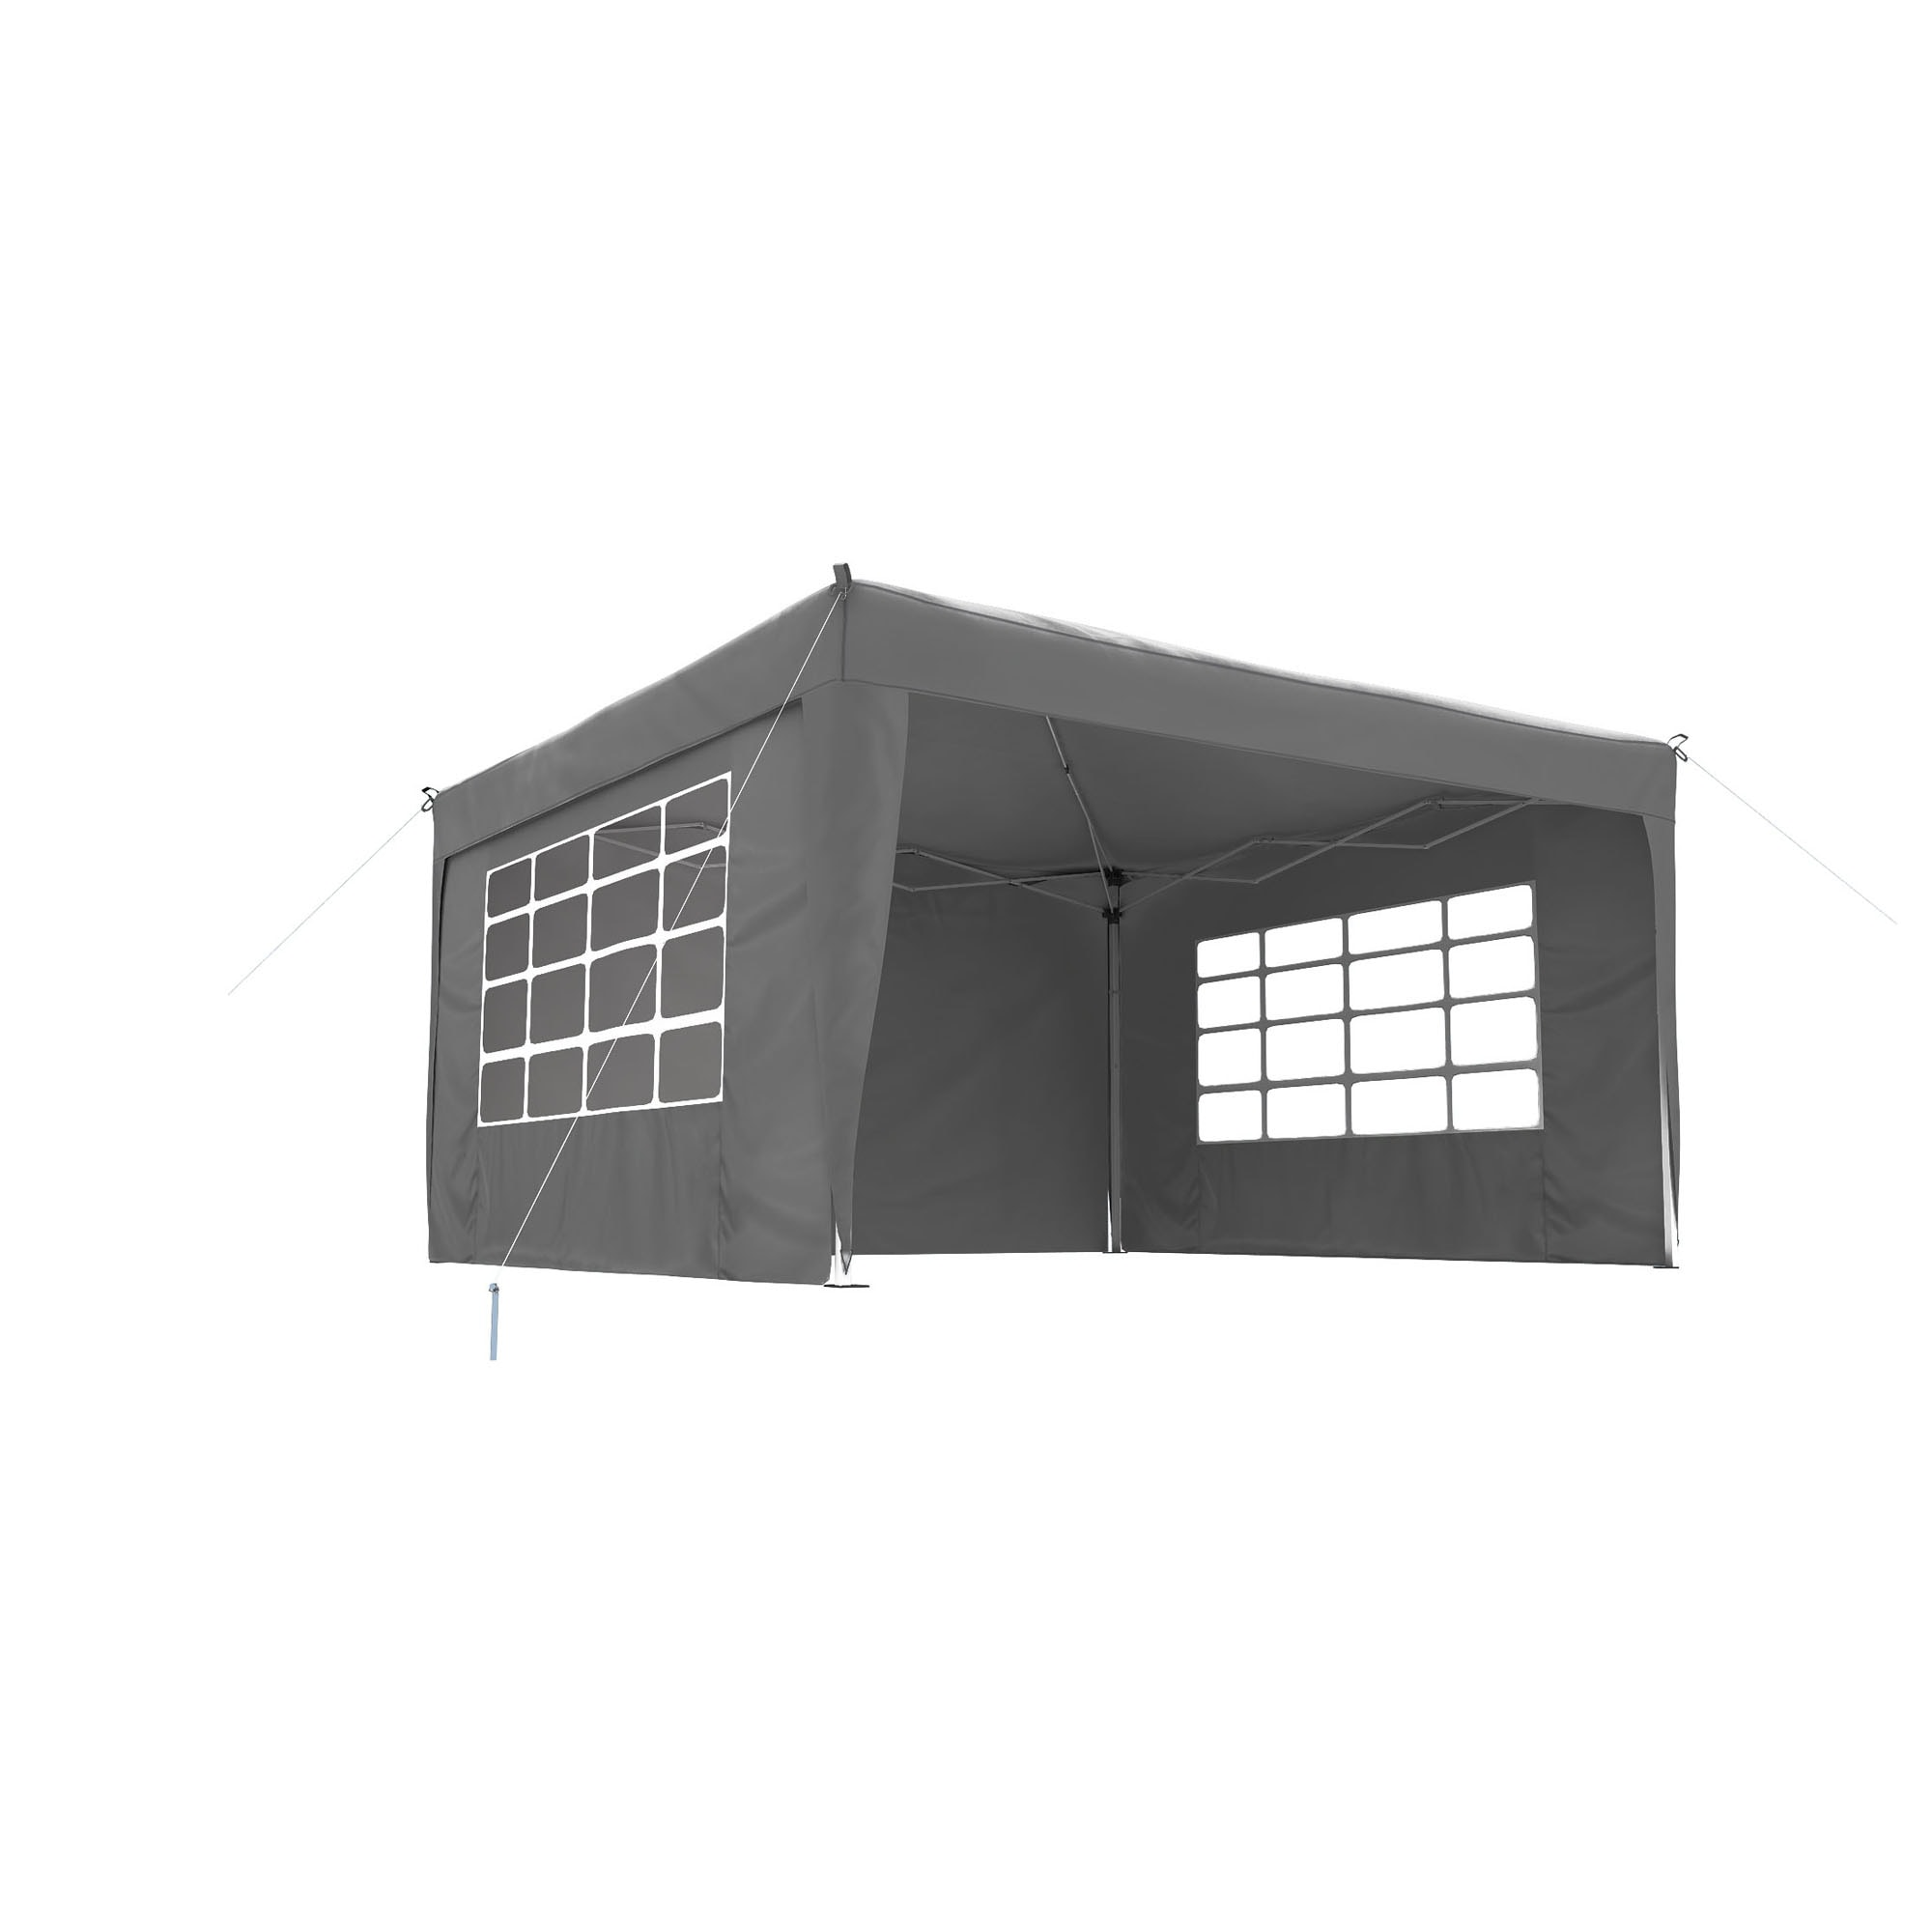 jarolift pavillon 3x3m gartenzelt partyzelt festzelt faltpavillon wasserdicht ebay. Black Bedroom Furniture Sets. Home Design Ideas